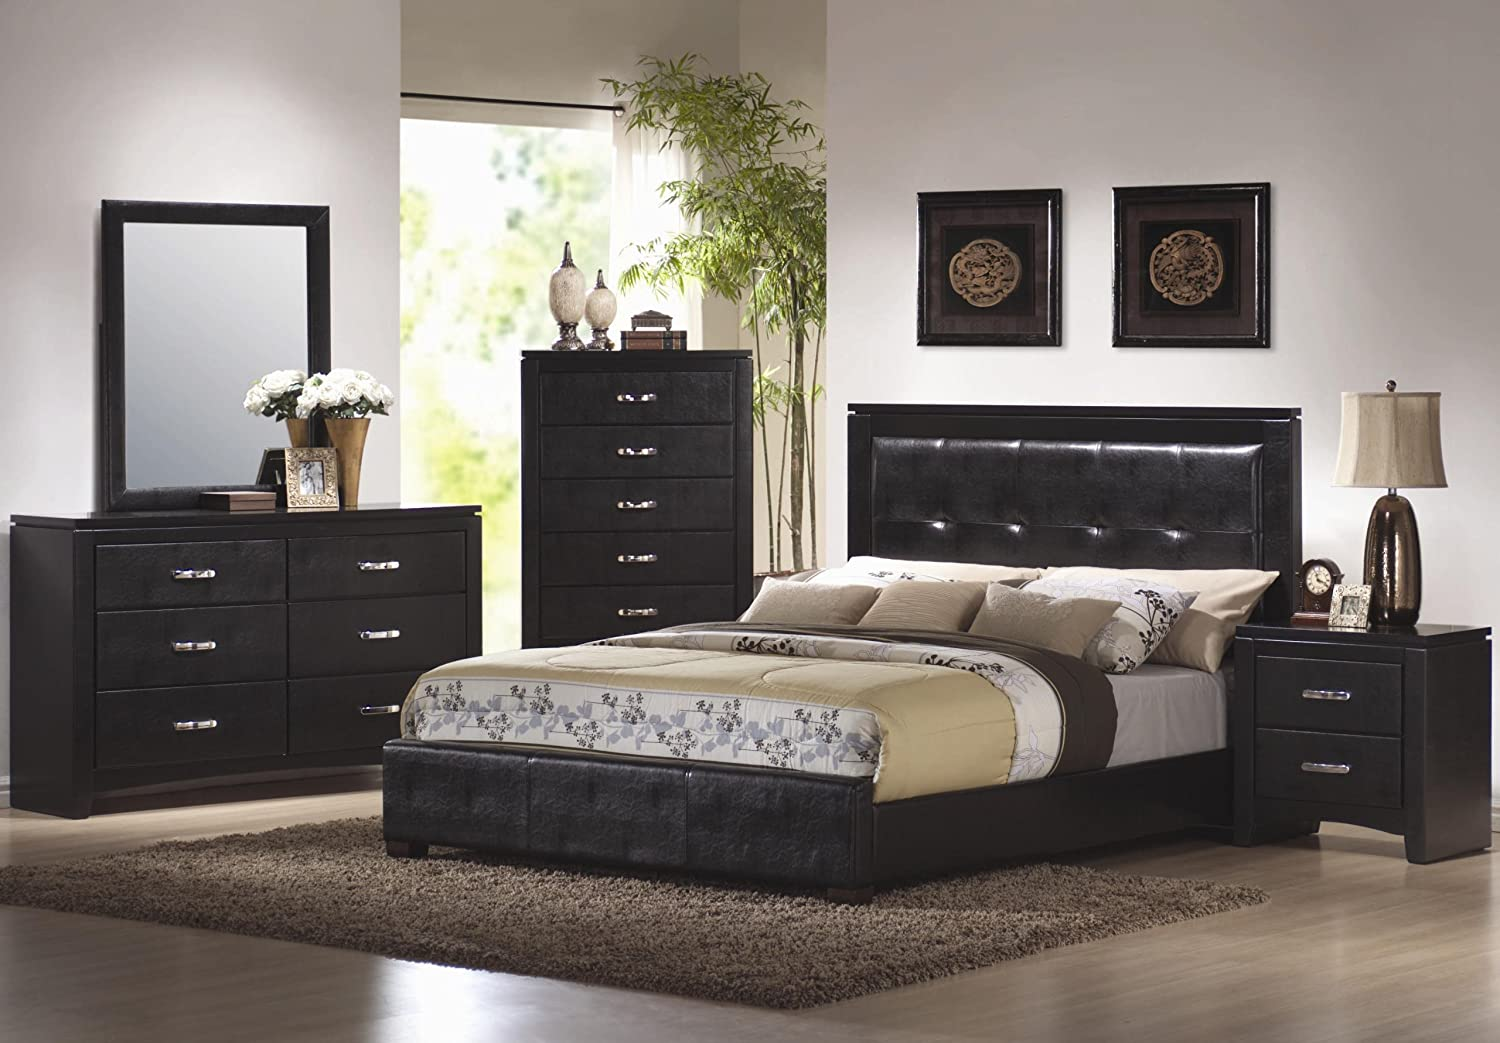 California King Bedroom Set. Amazon com  4pc California King Size Bedroom Set in Black Finish Kitchen Dining